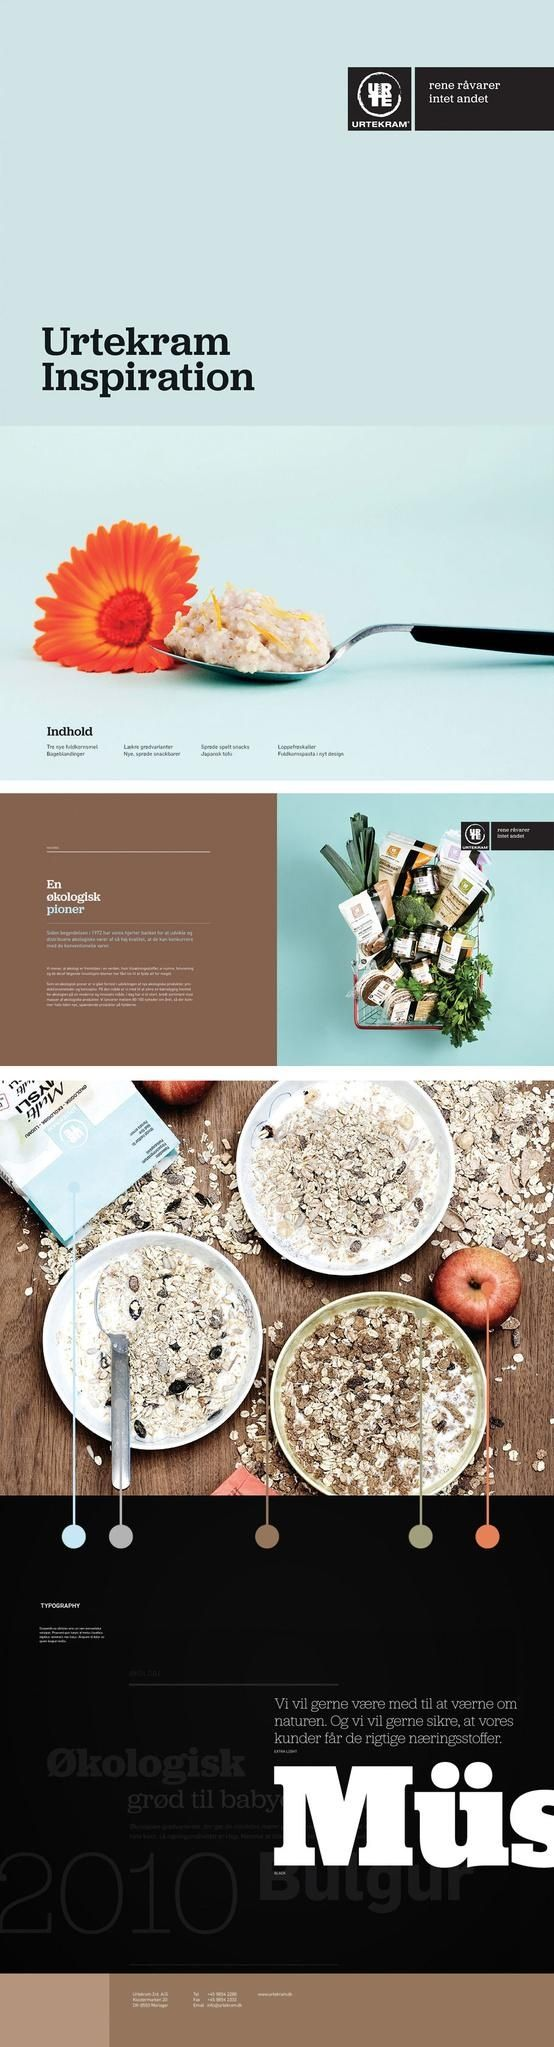 Clean and simple #webdesign #web #design #layout